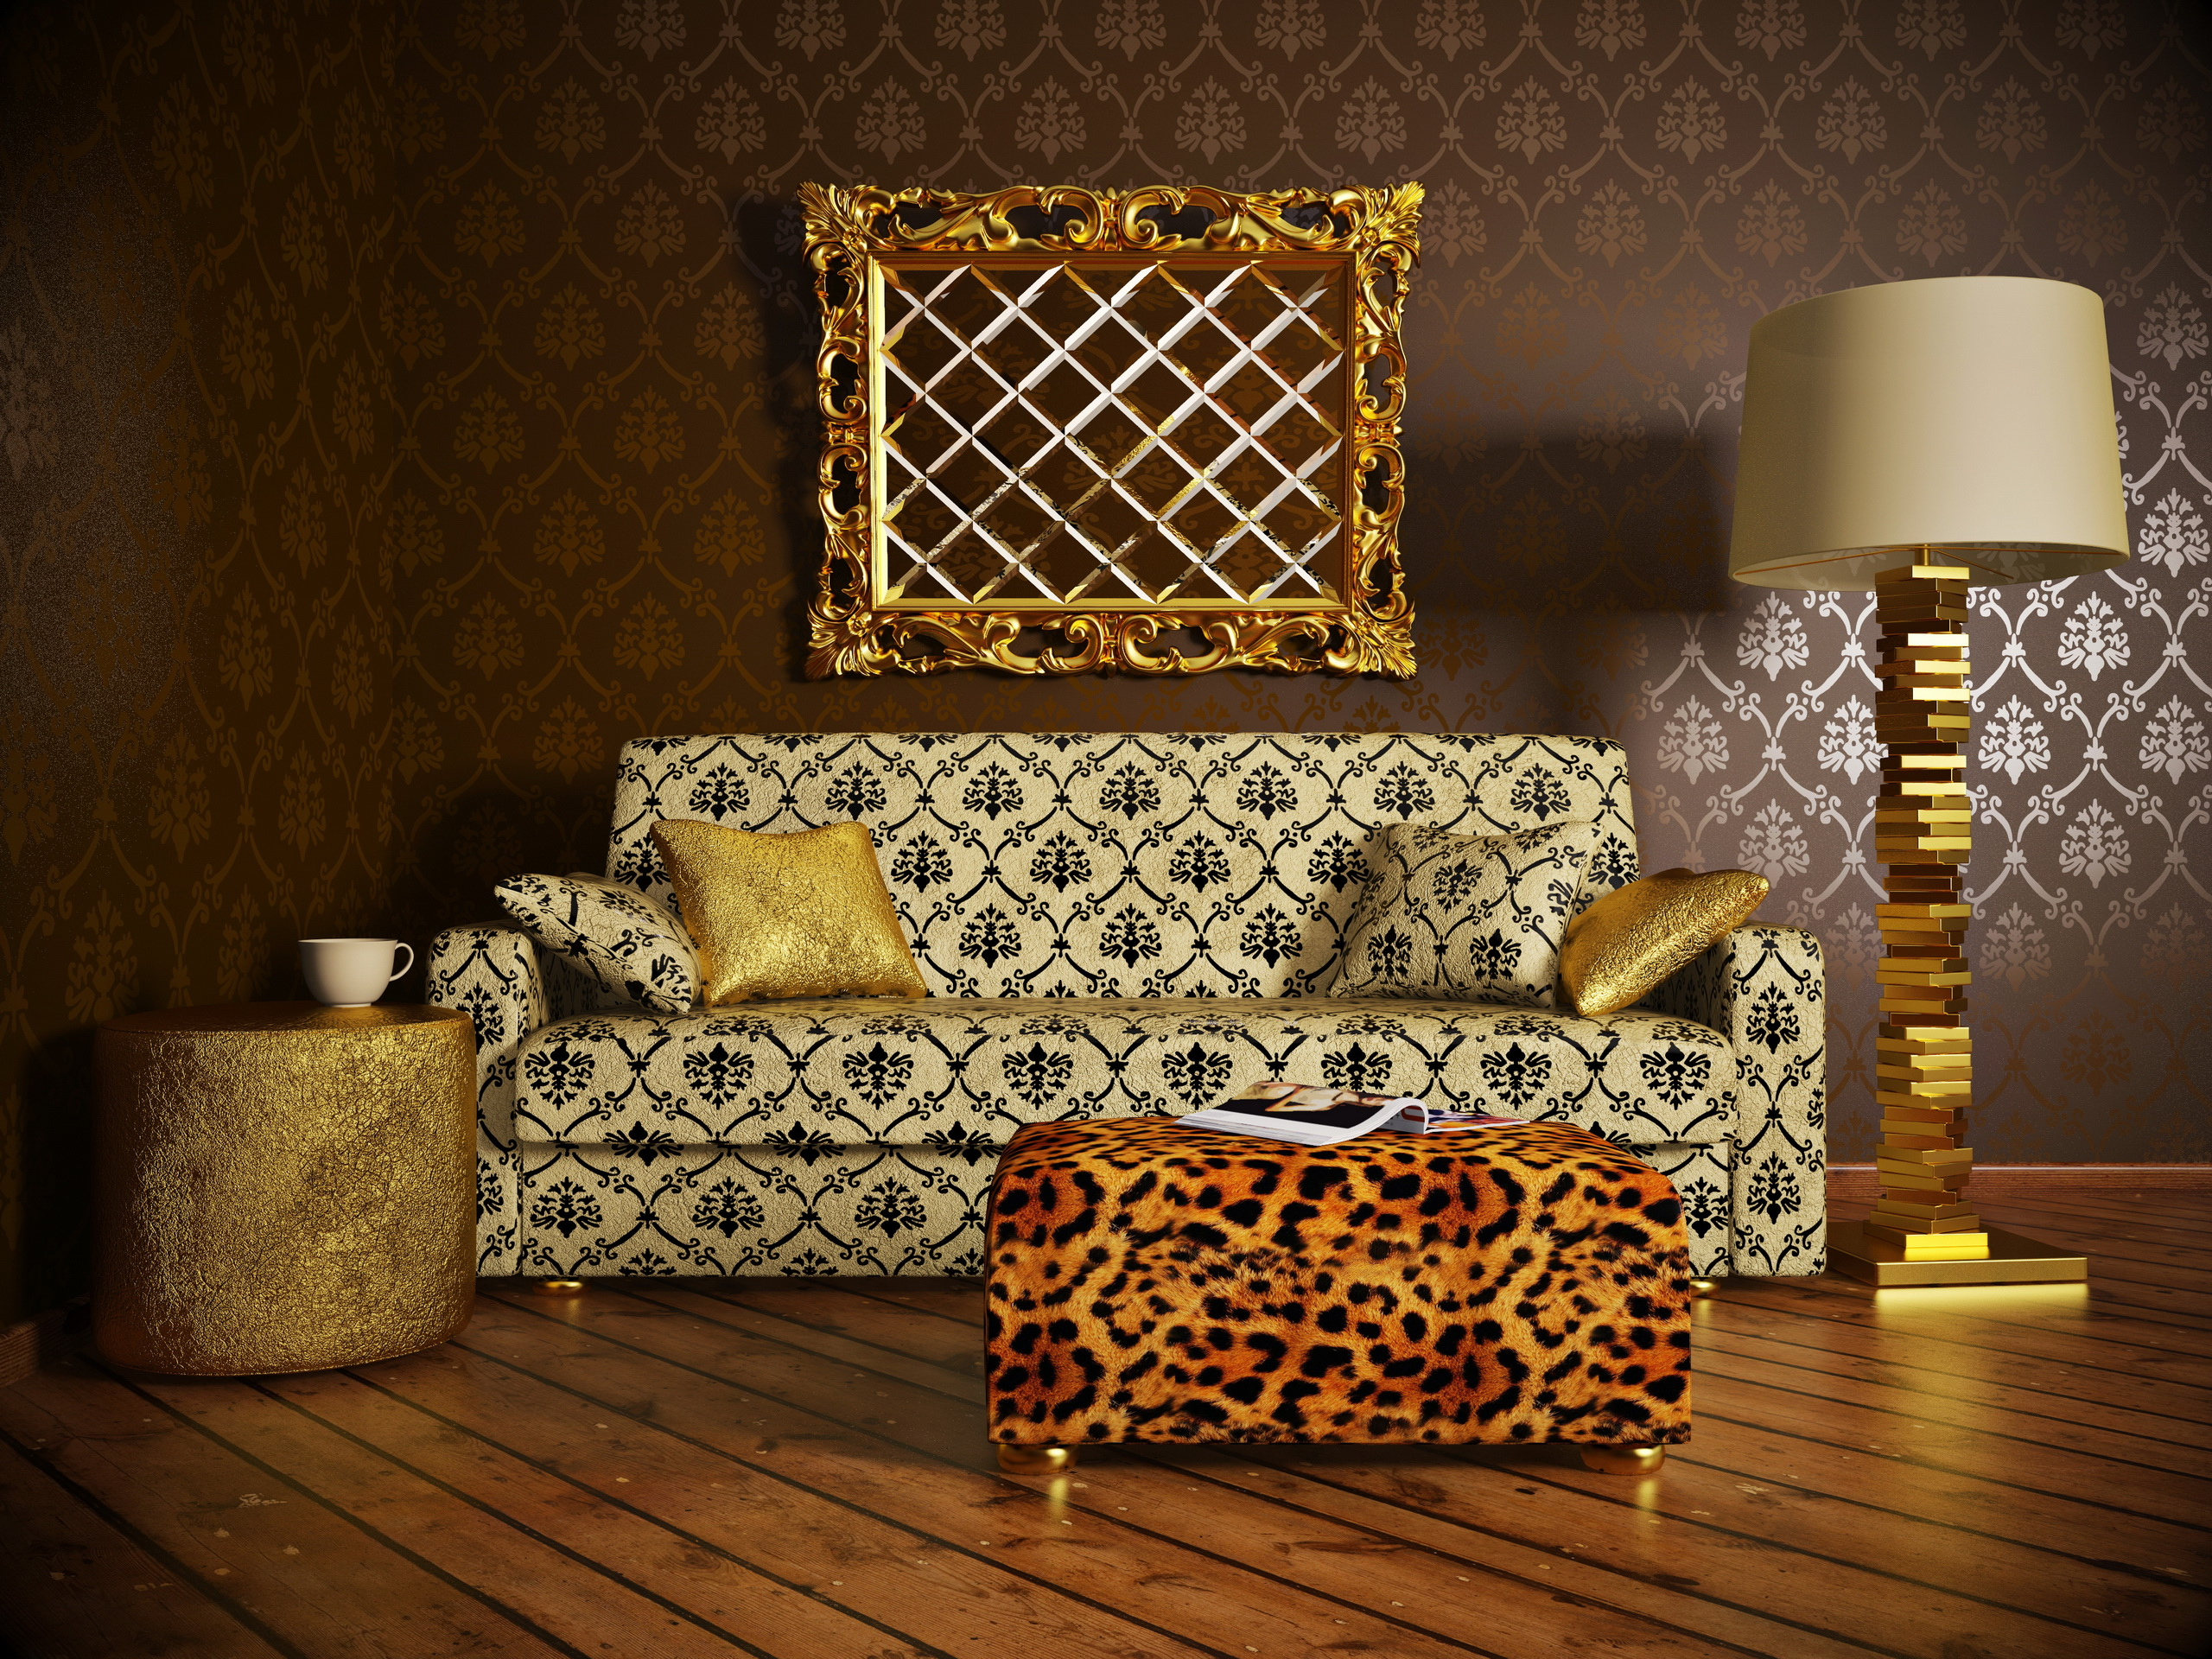 Furniture wallpapers pictures images - Furniture image ...